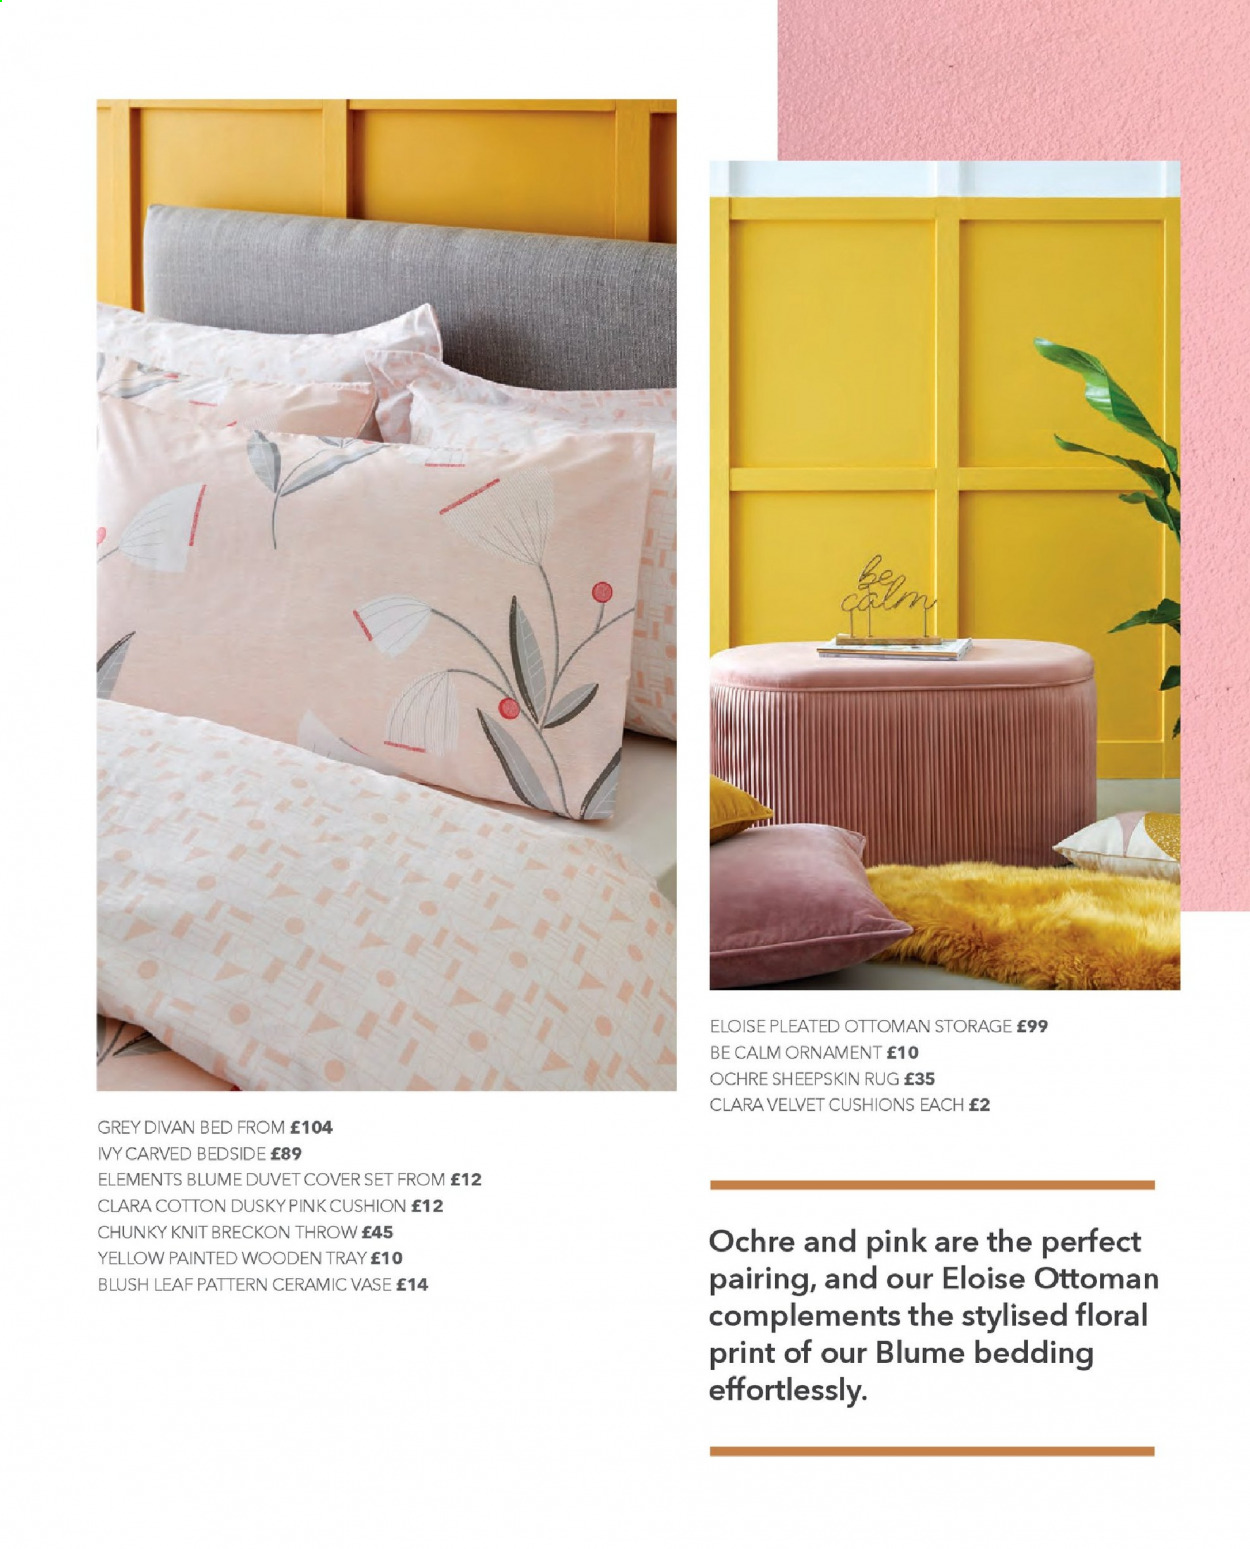 Dunelm offer  - Sales products - bed, bedding, cotton, cover, cushion, duvet, duvet cover, rug, storage, throw, tray, ornament, ottoman. Page 26.